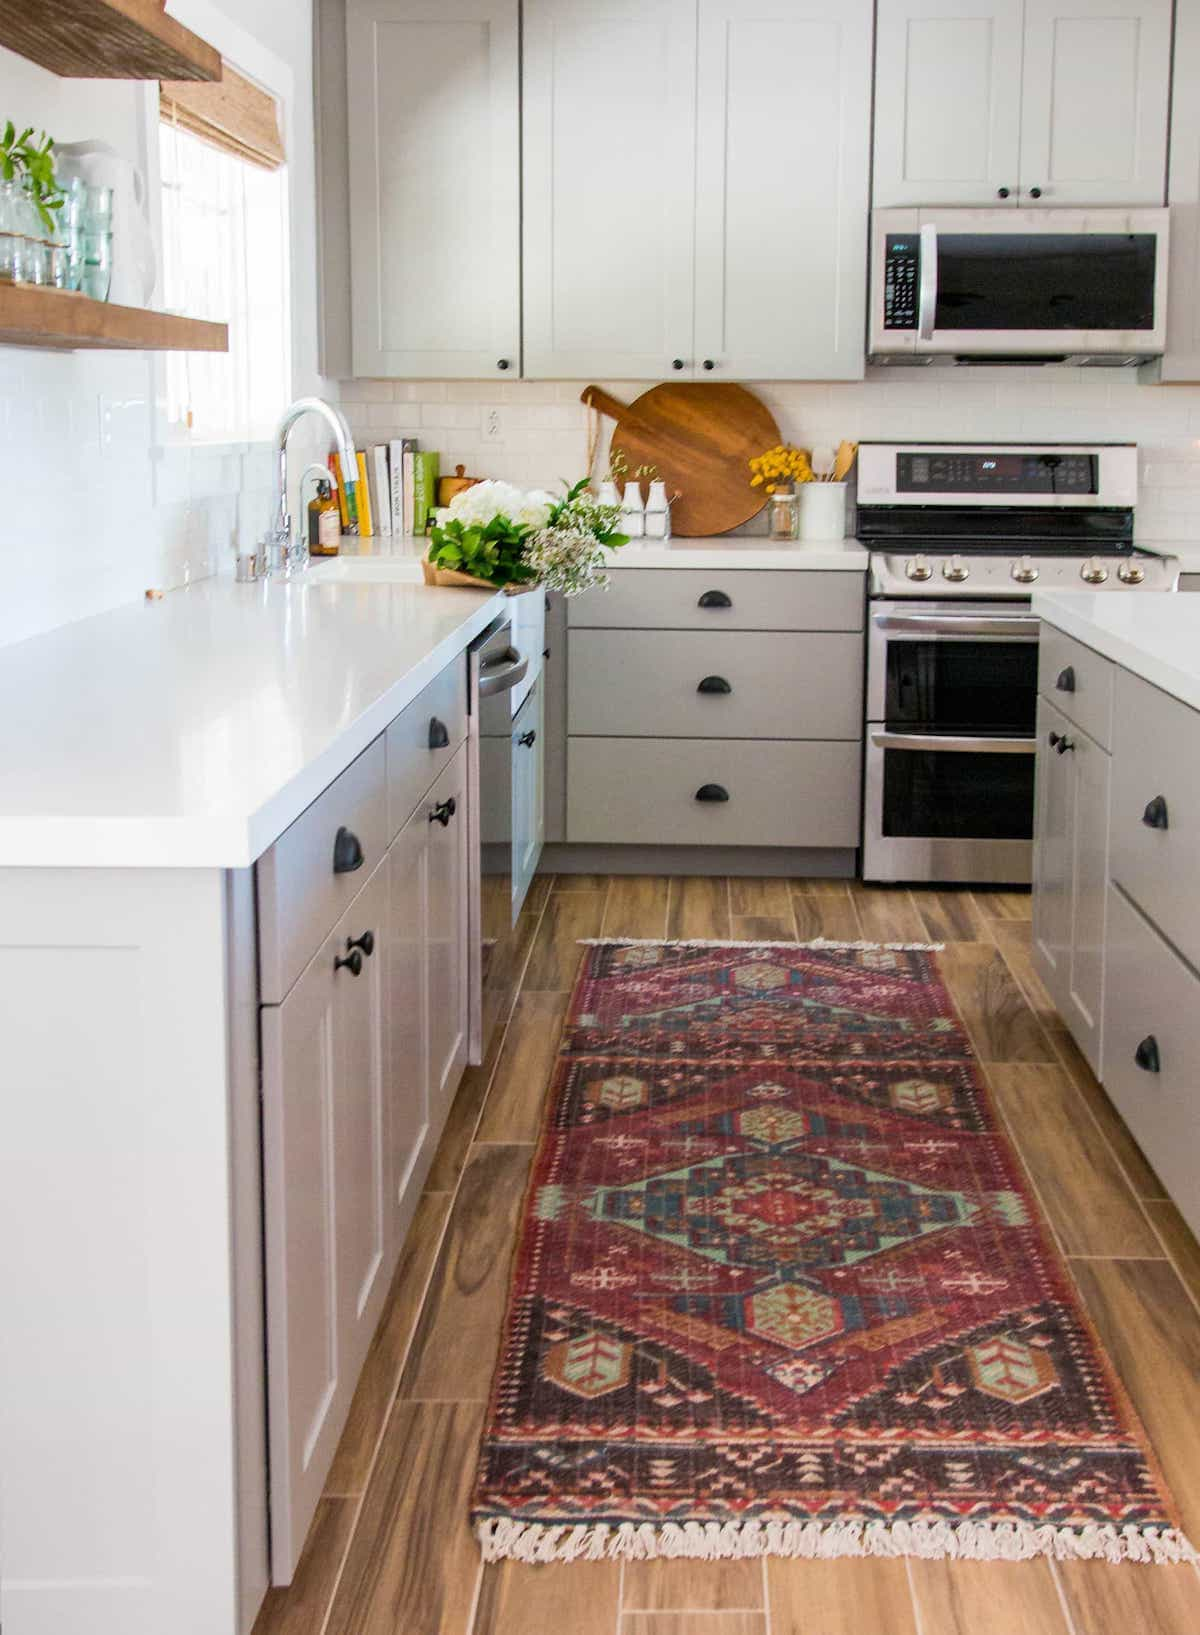 Southwest Diamond Wool Rug Runners For Kitchen Floor (Image 11 of 15)